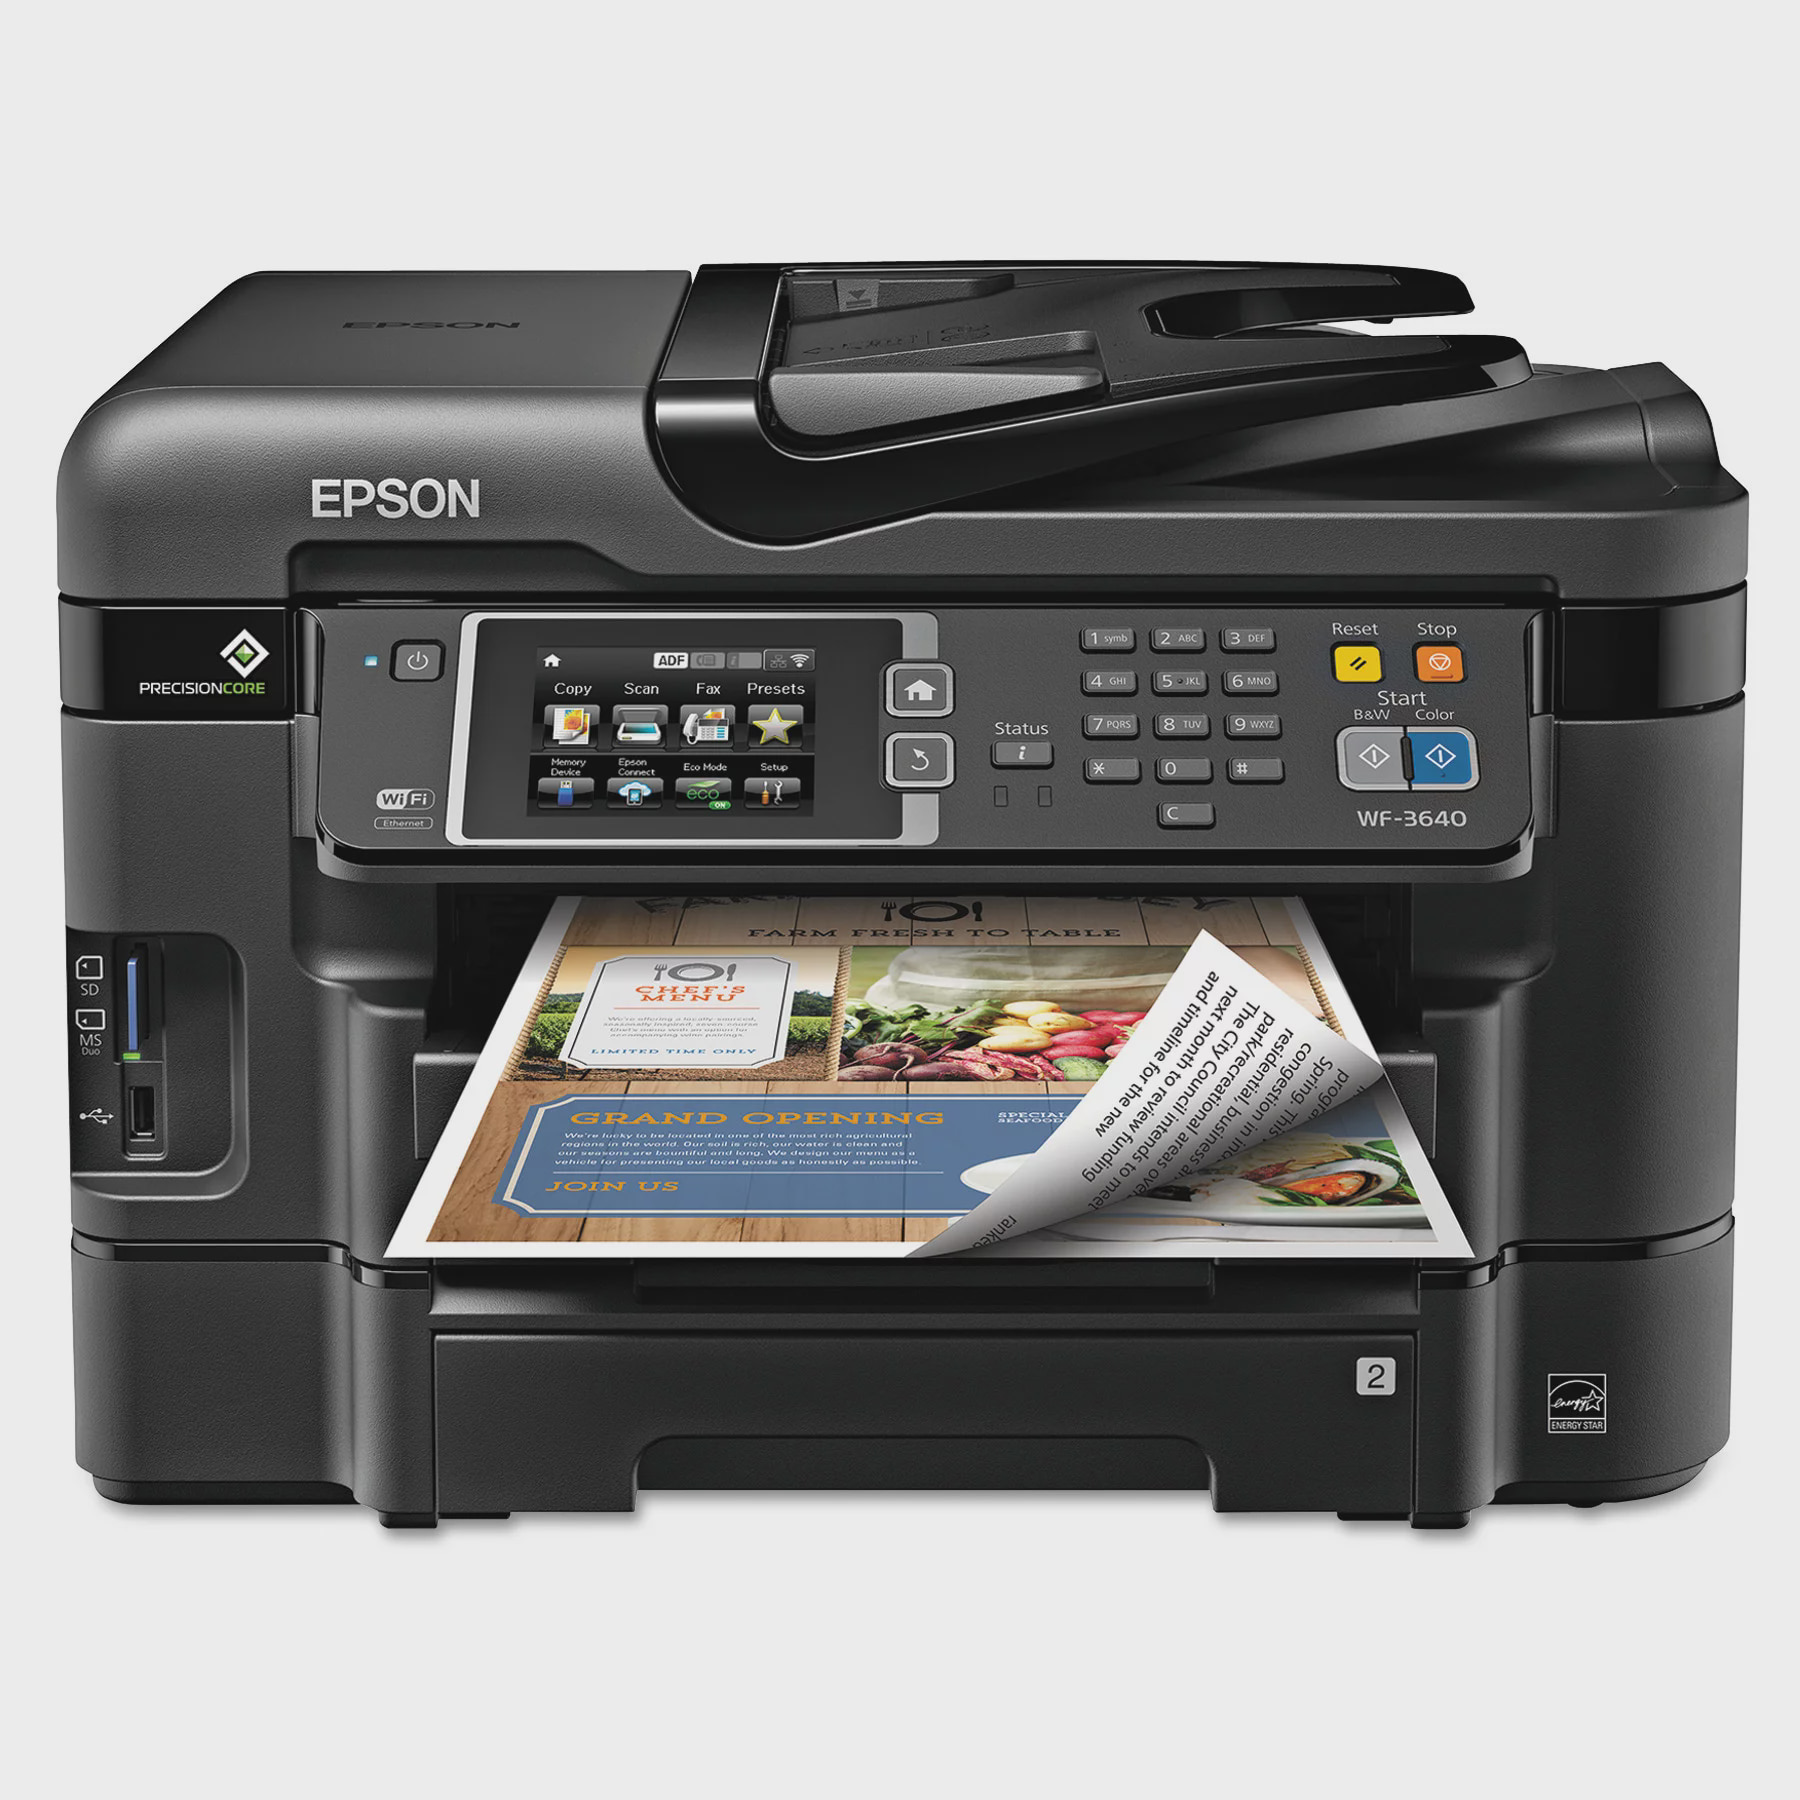 Epson WorkForce WF-3640 All-in-One Wireless Color Printer Copier Scanner Fax Machine by Epson